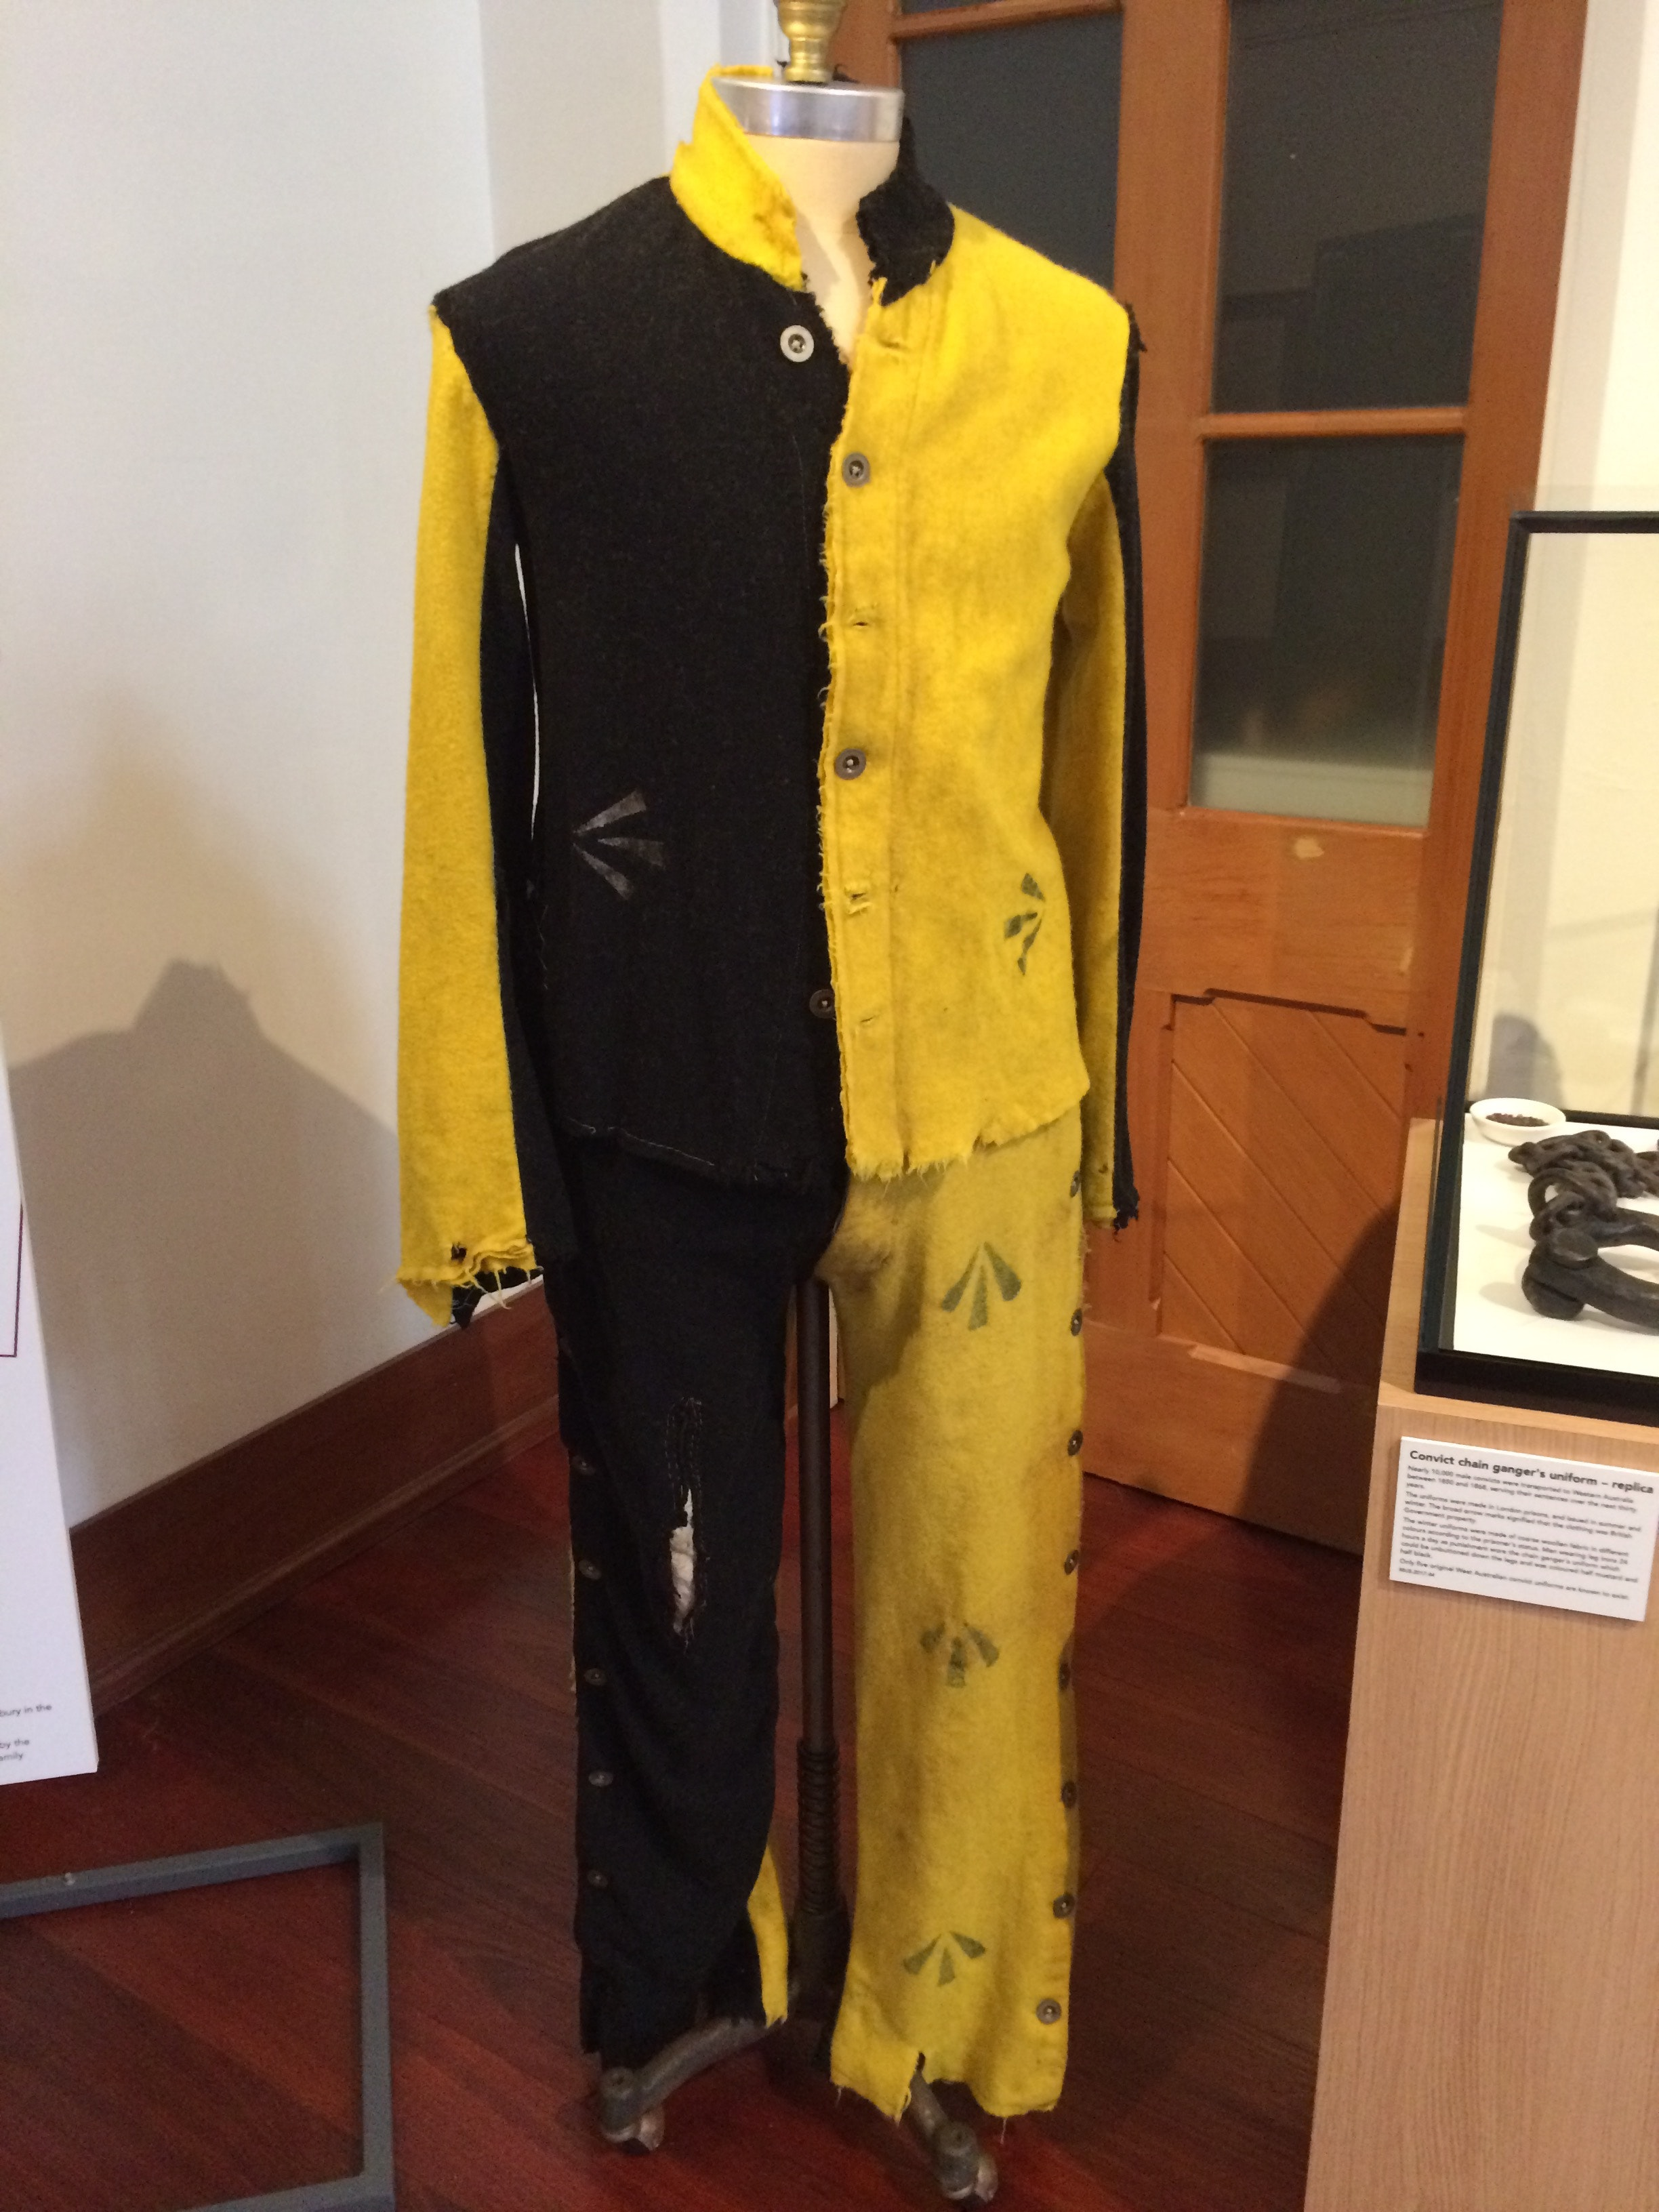 Replica convict uniform, Bunbury Museum